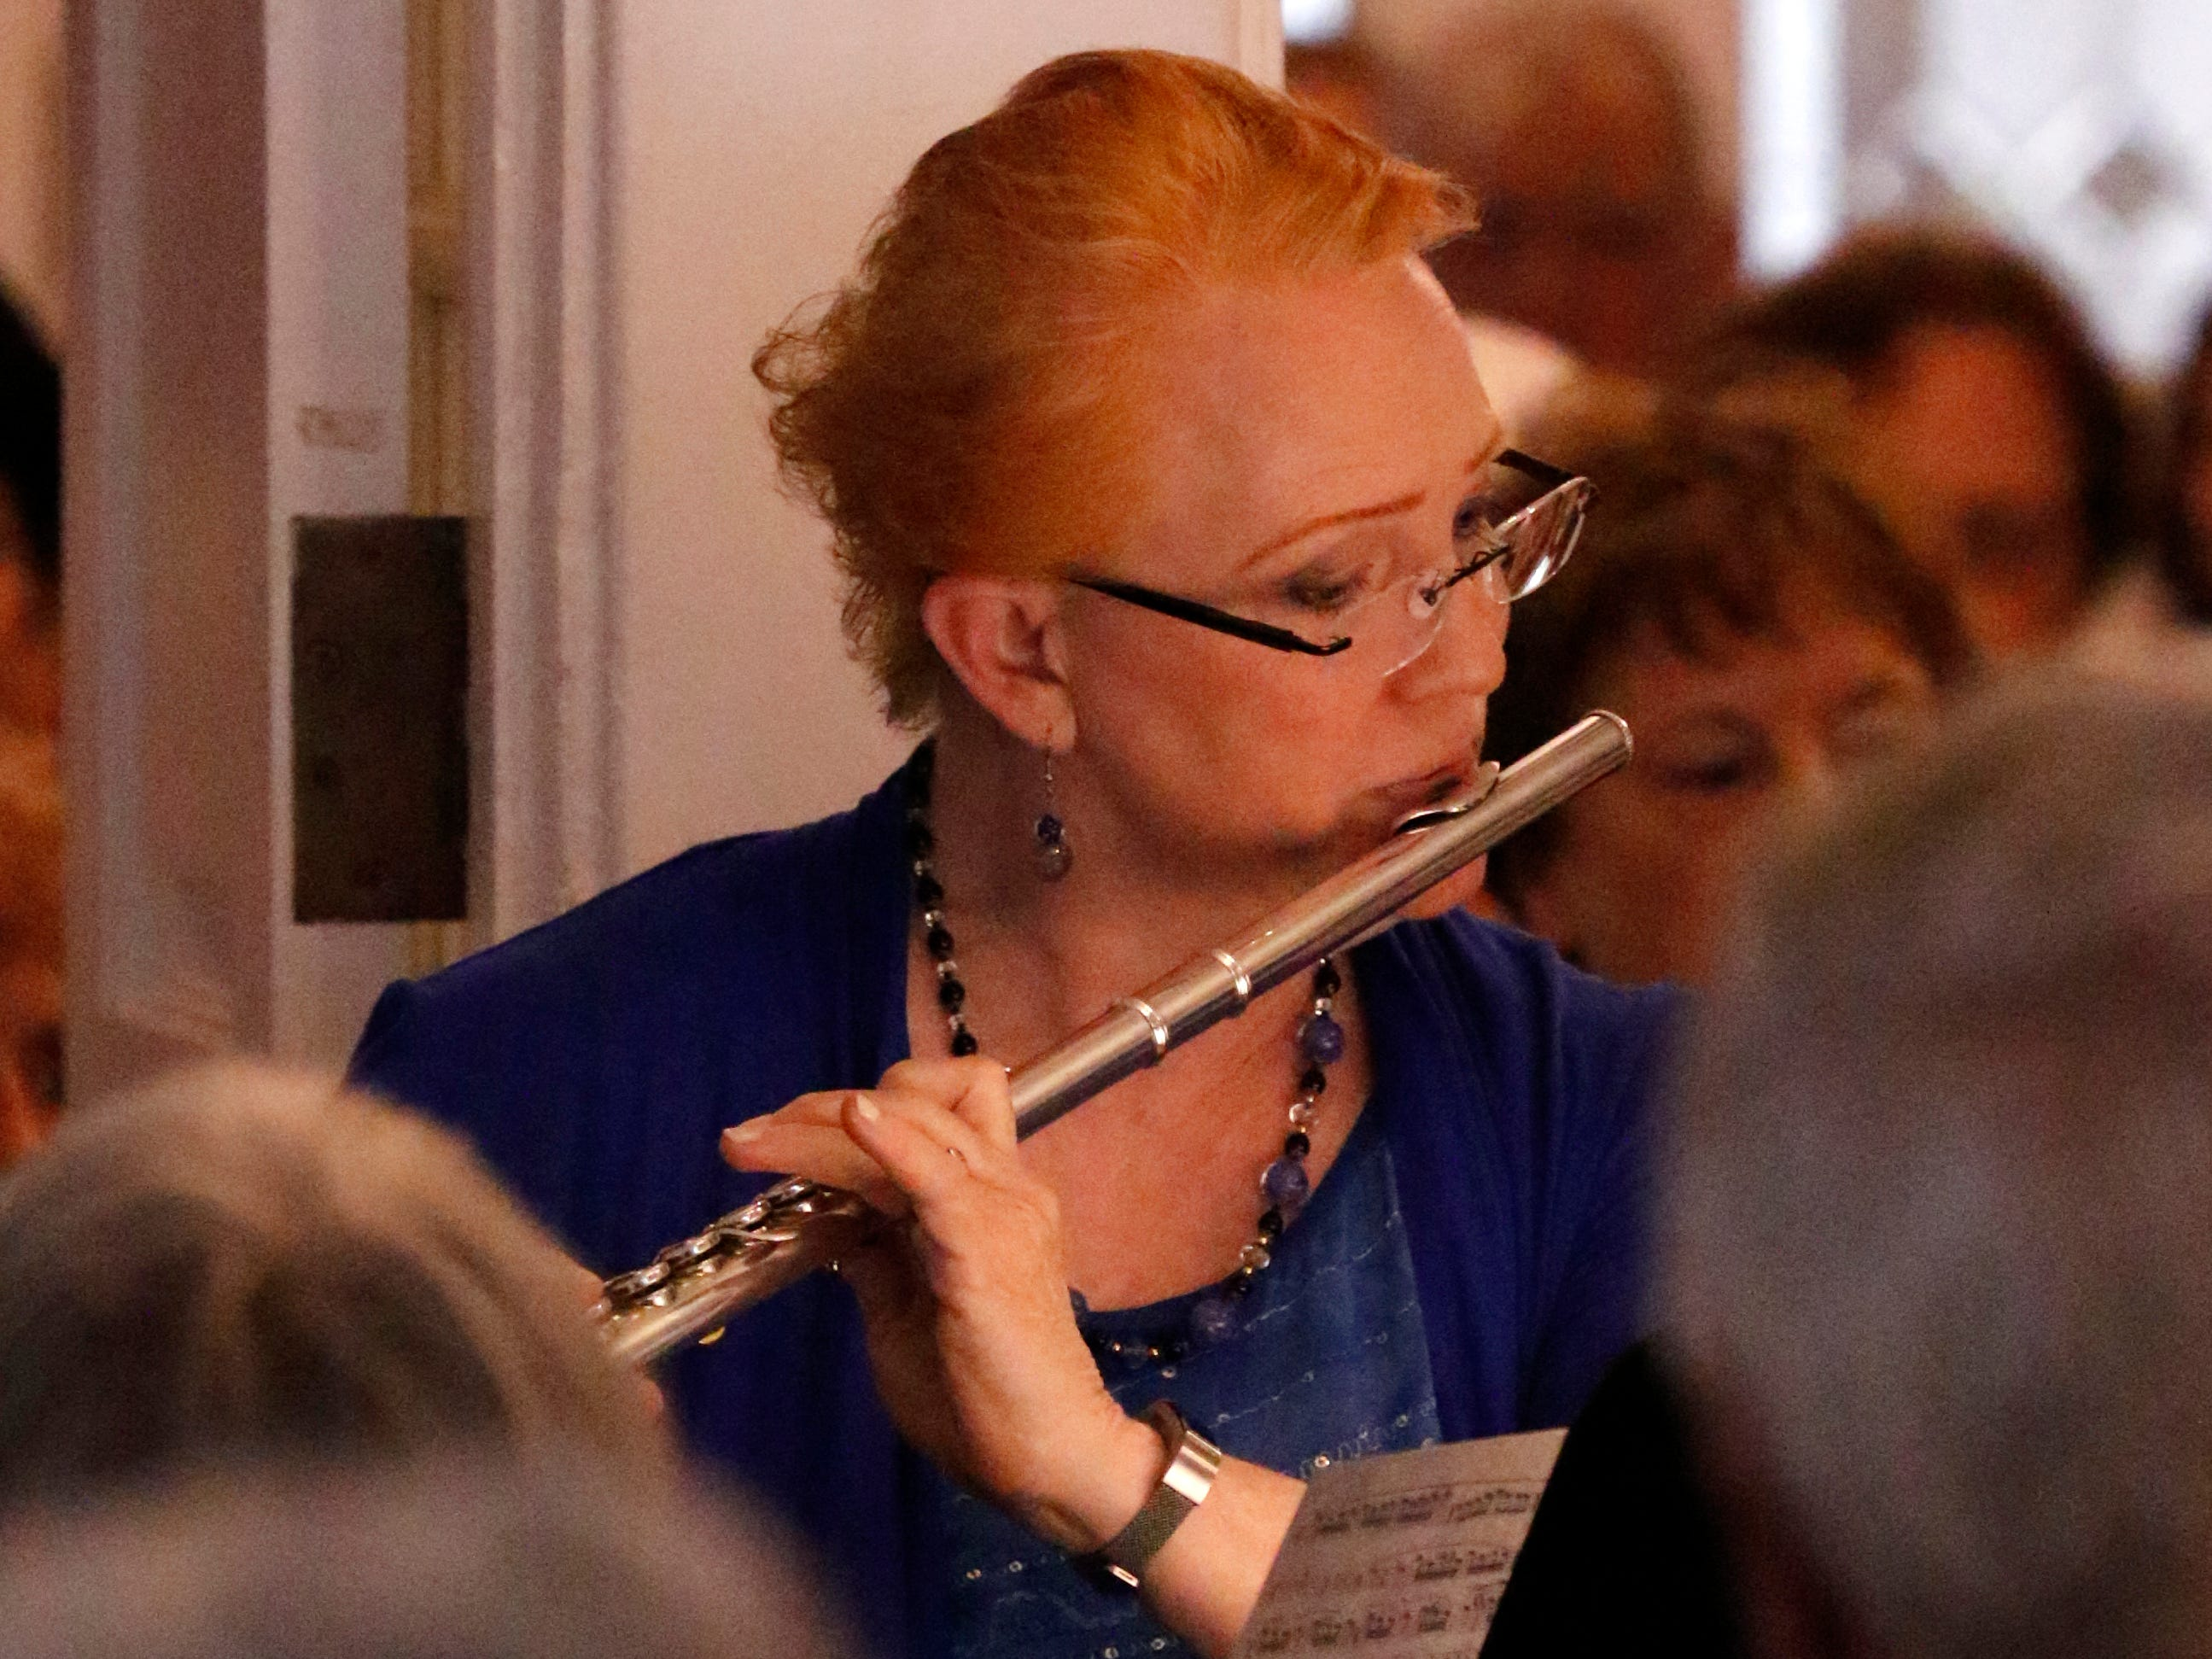 Margaret Swinchoski performs Friday, July 27, 2018, during a Lancaster Festival Cafe Concert at the Lancaster Country Club in Hocking Township. The concert featured principal members from different sections of the Lancaster Festival Orchestra.